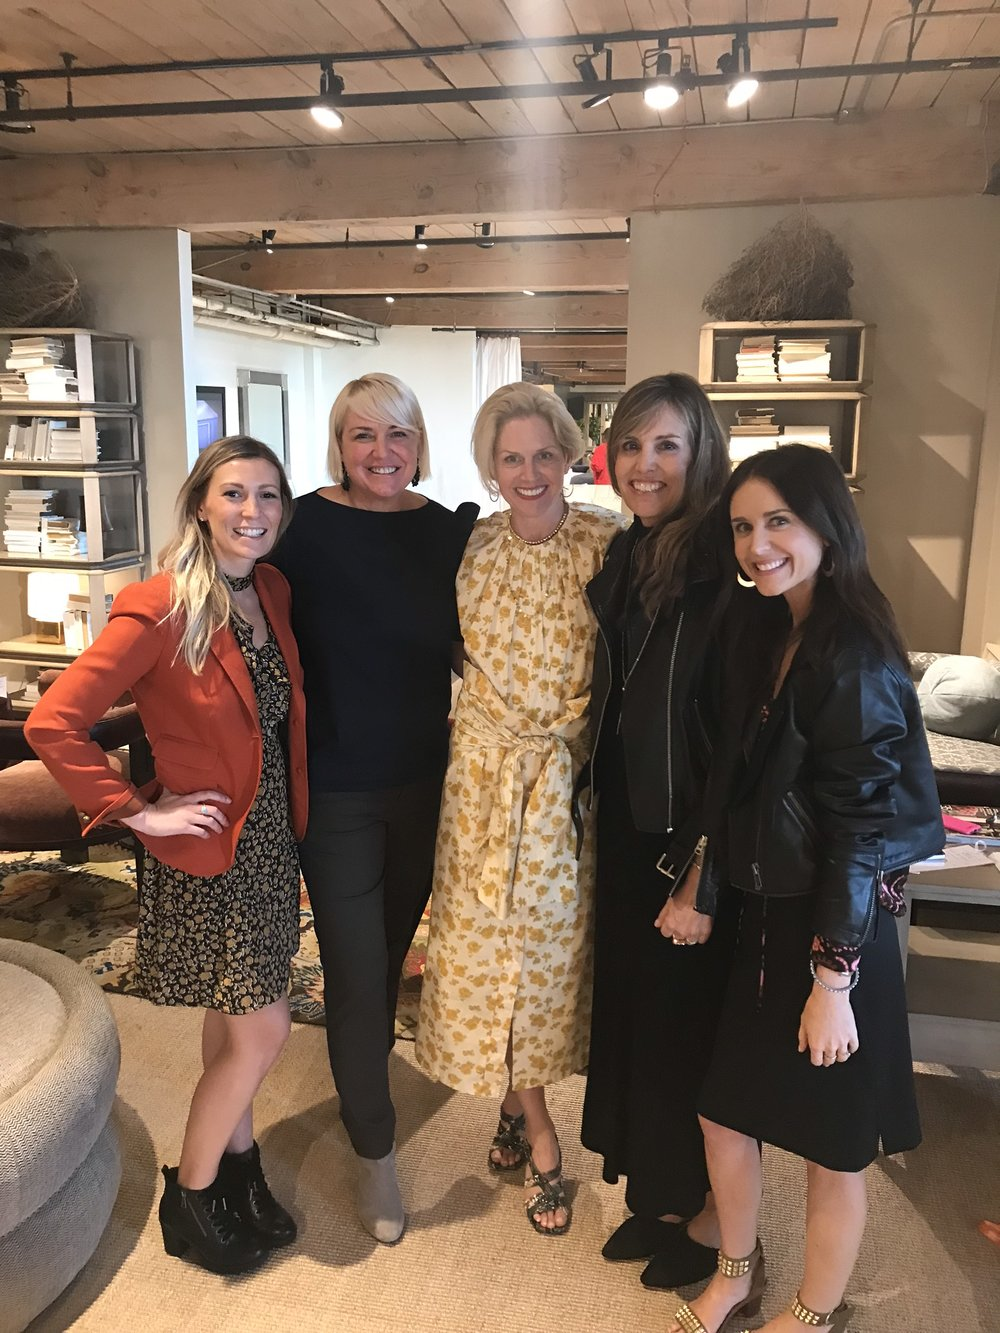 Liz, Rachel, and me meeting a few of our design icons - Susan and Kate Hable.